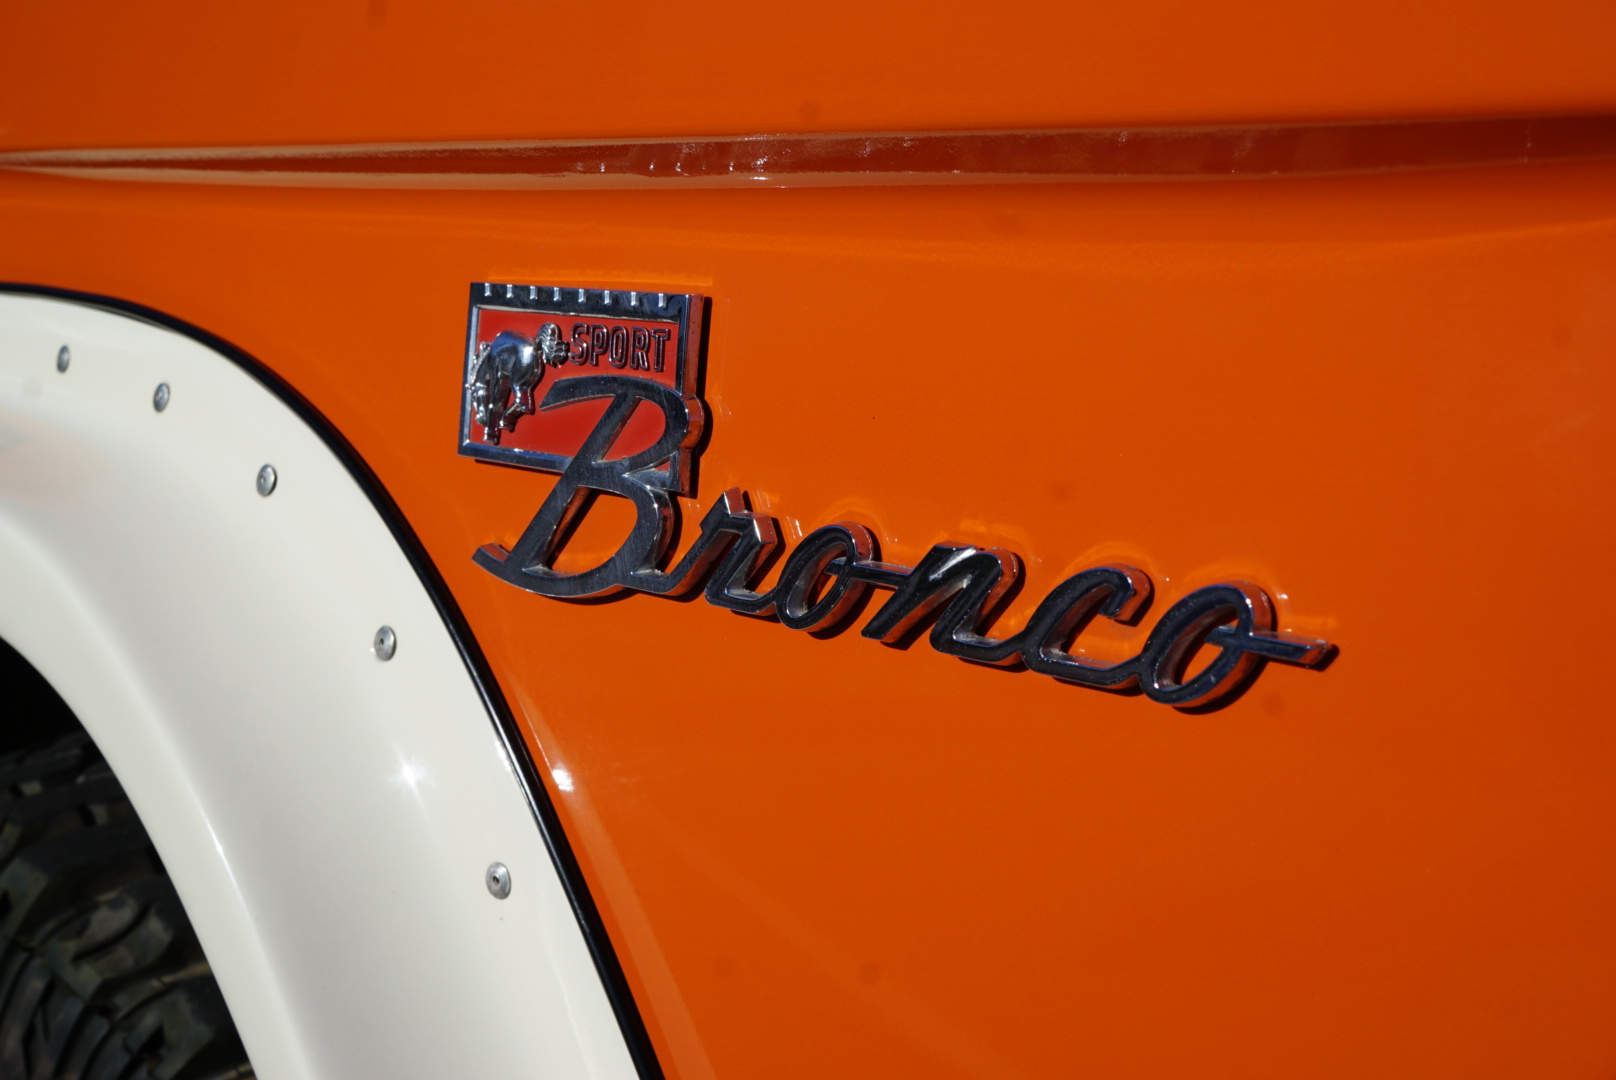 1974 Ford Bronco badge